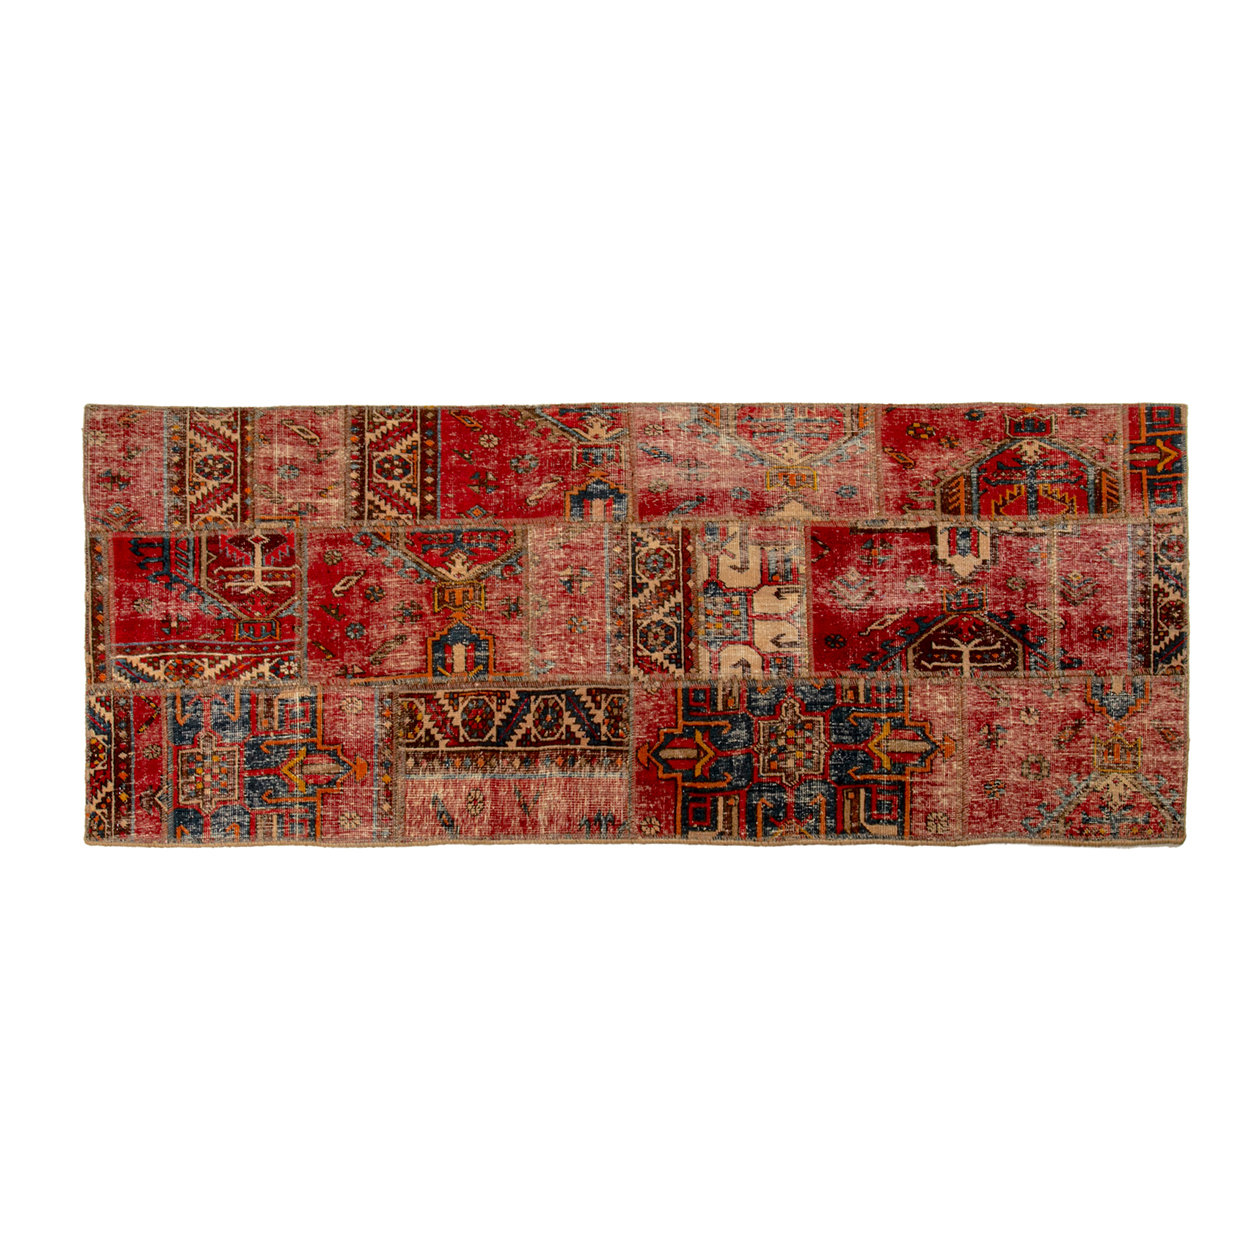 Image of Tappeto Vintage Patchwork 202x80, multicolore